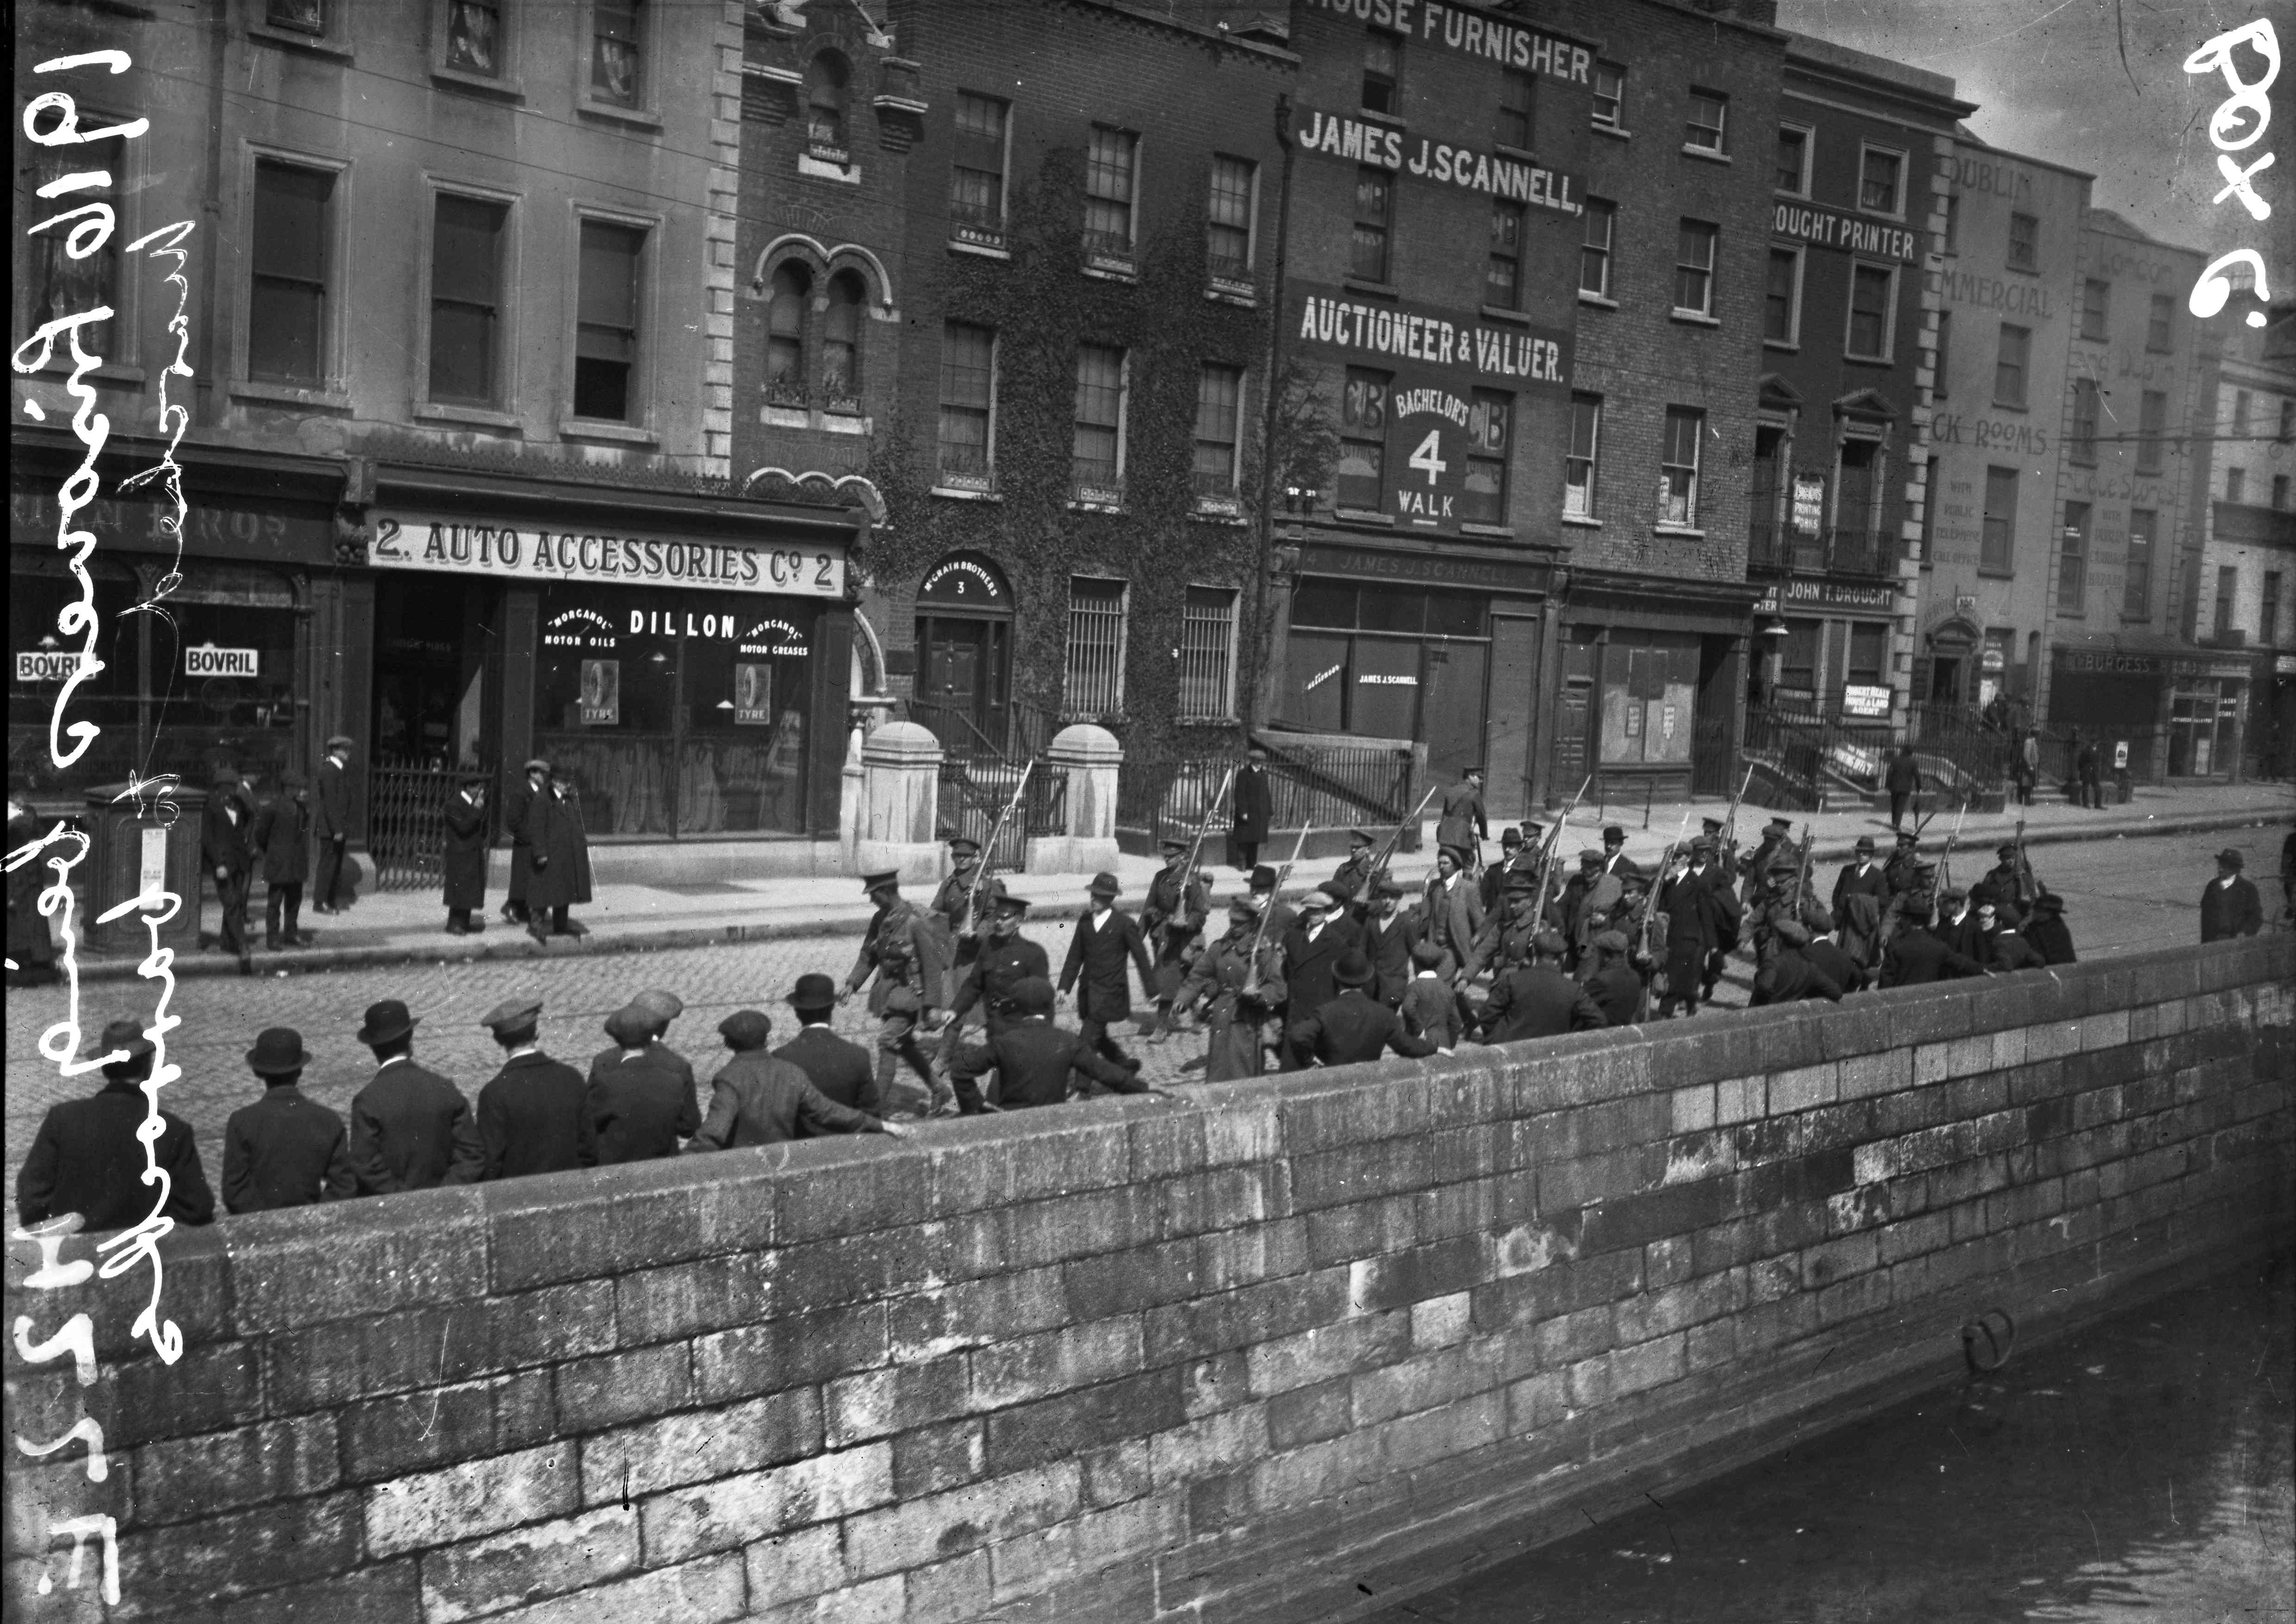 Irish rebel prisoners being marched through Dublin in 1916.